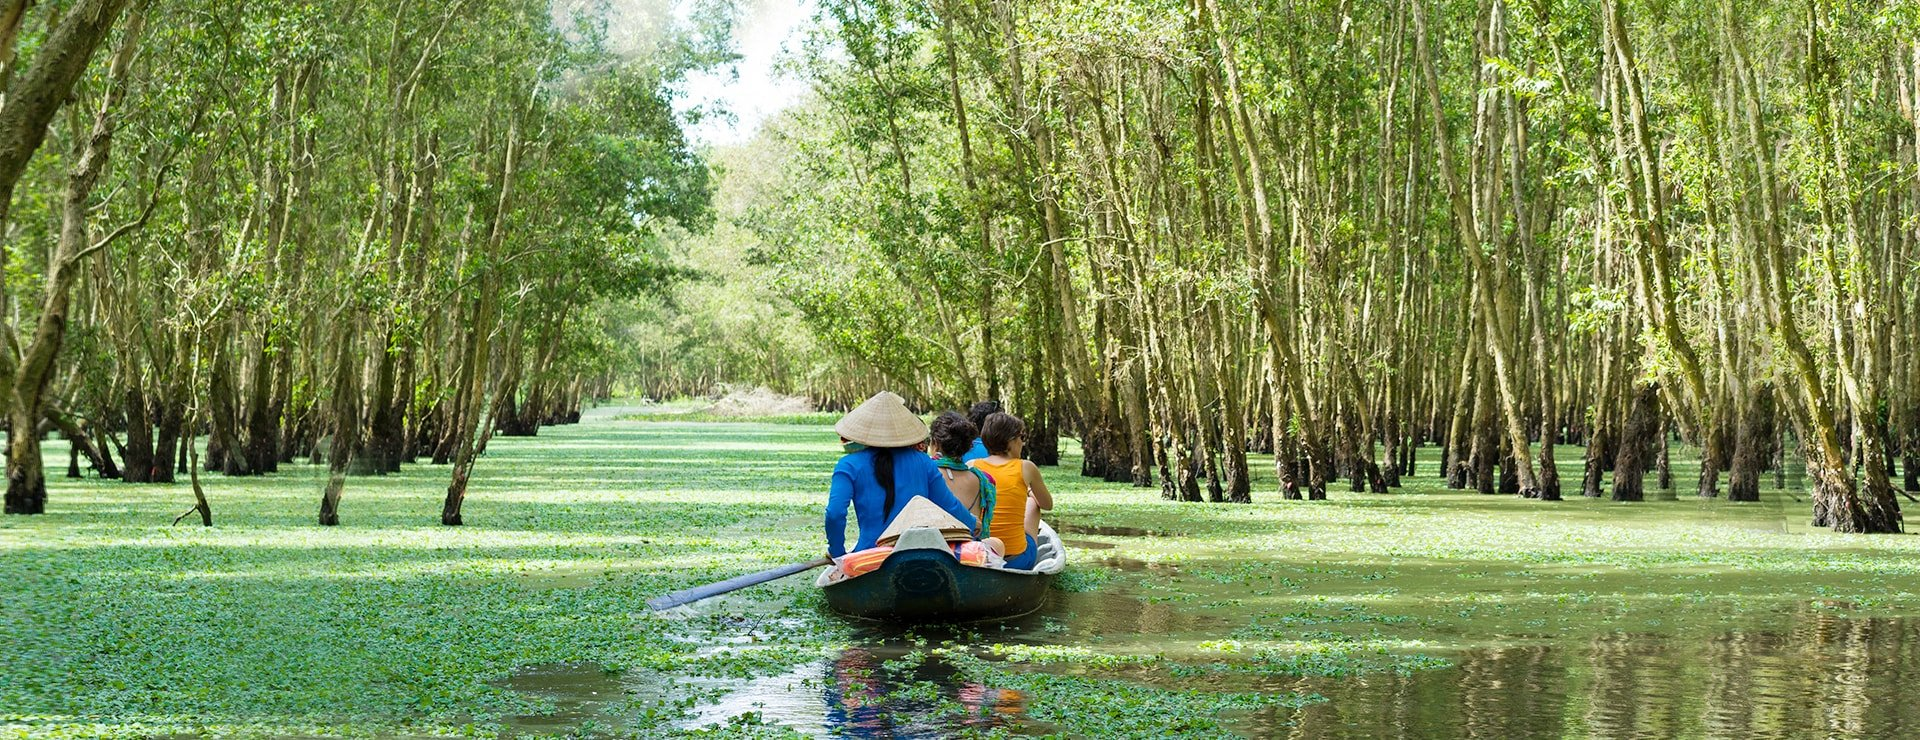 Tourism rowing boat in Tra Su flooded indigo plant forest in An Giang,  Mekong delta, Vietnam copy – Asia Trip Deals